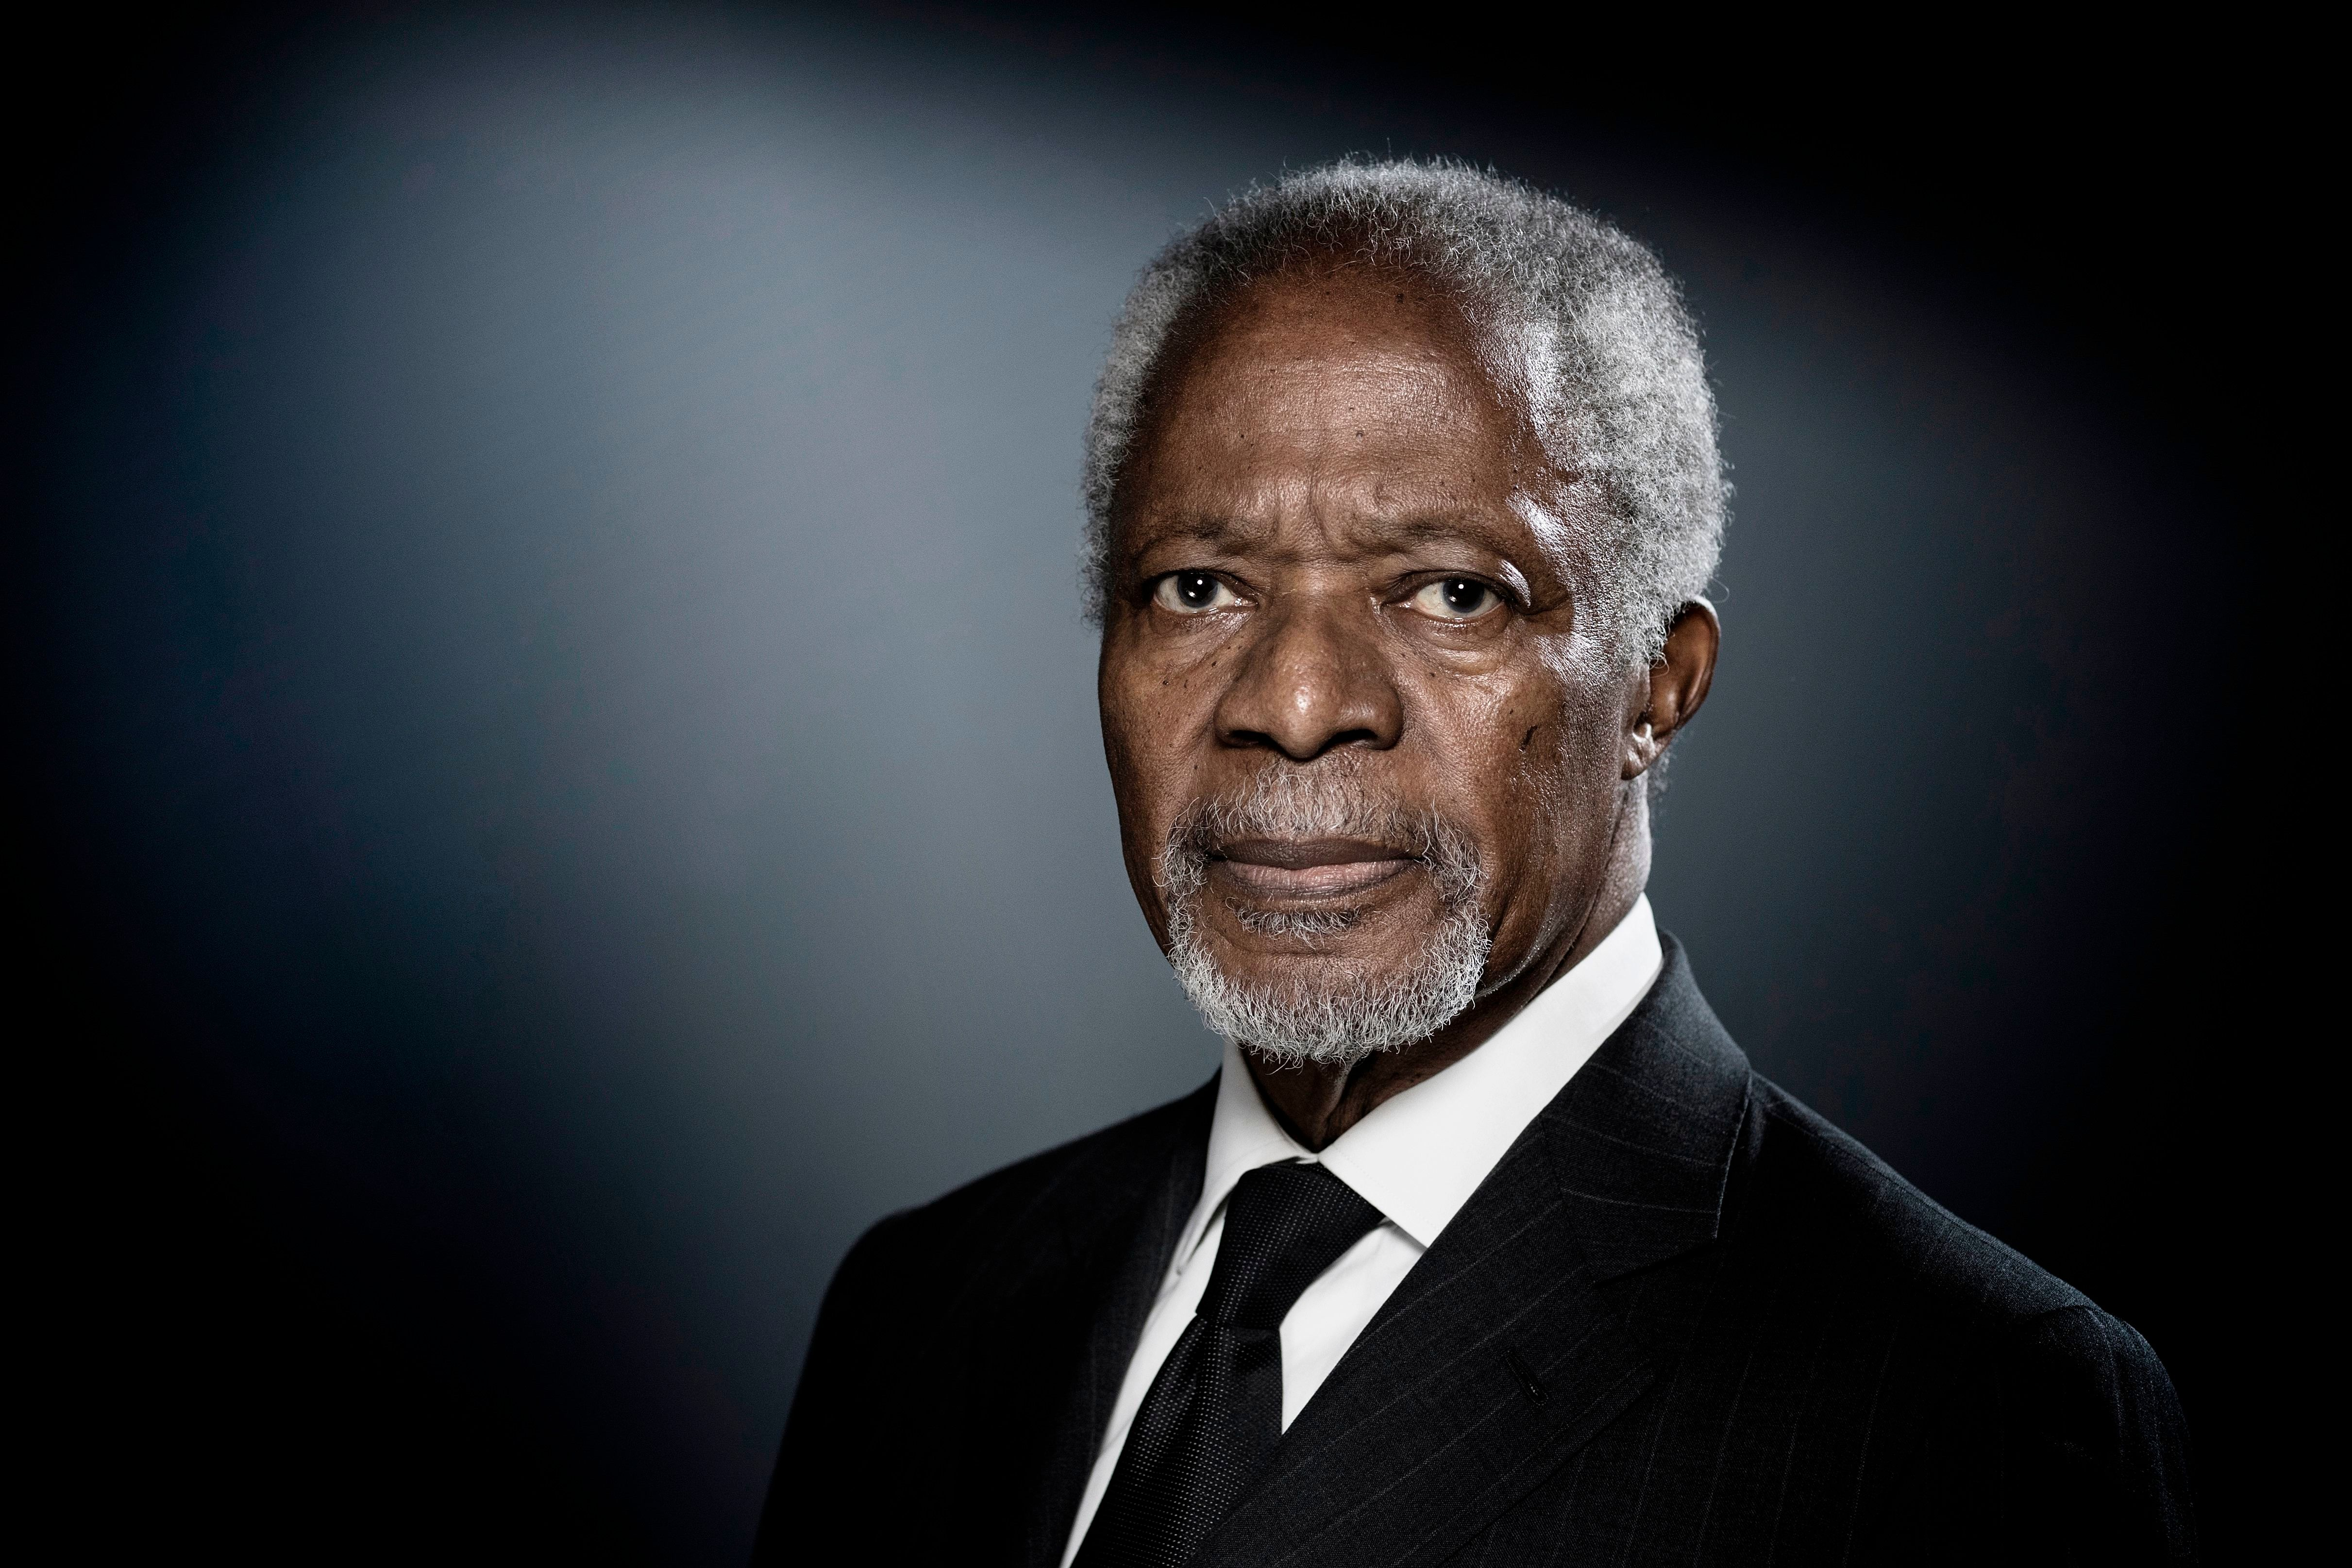 Kofi Annan, The Former United Nations Secretary-General, Dead At 80